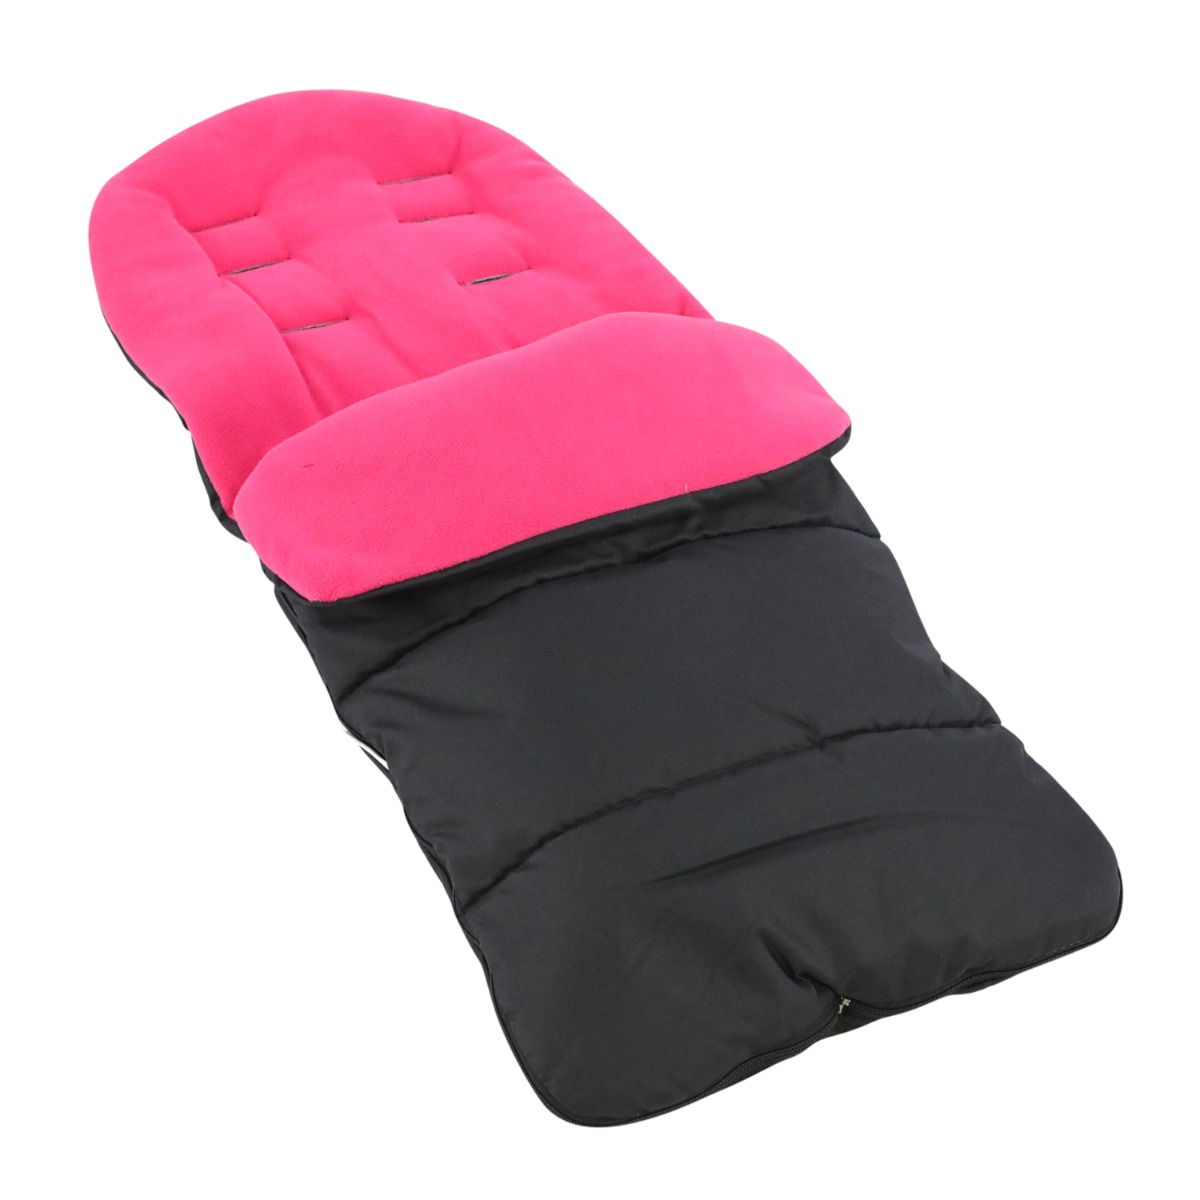 Universal-Pushchair-Footmuff-Cosytoes-Fleece-Lined-Fit-For-Stroller-Prams-Buggy thumbnail 44